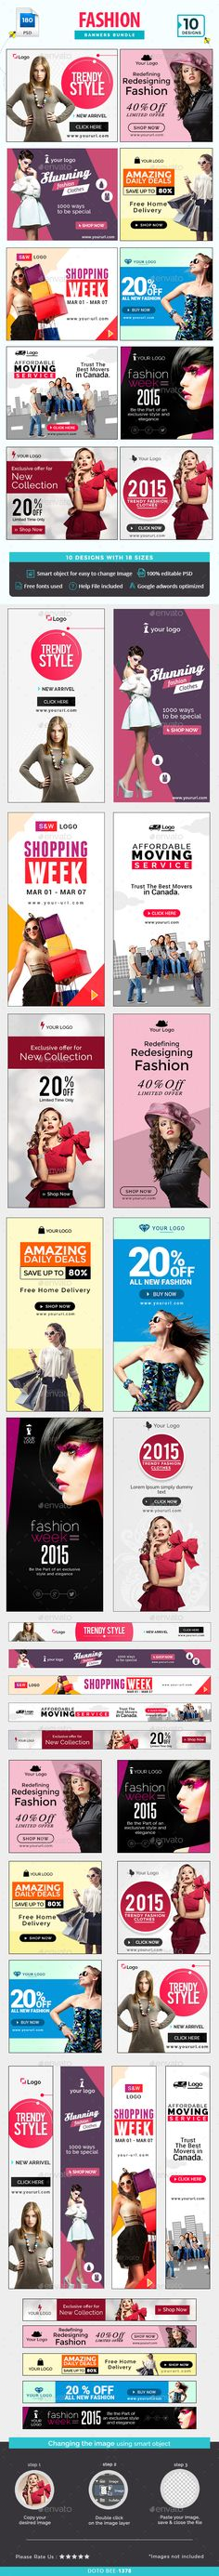 Fashion Banners Bundle  10 Sets  180 Banners — Photoshop PSD #style #studio • Available here → https://graphicriver.net/item/fashion-banners-bundle-10-sets-180-banners/16076205?ref=pxcr